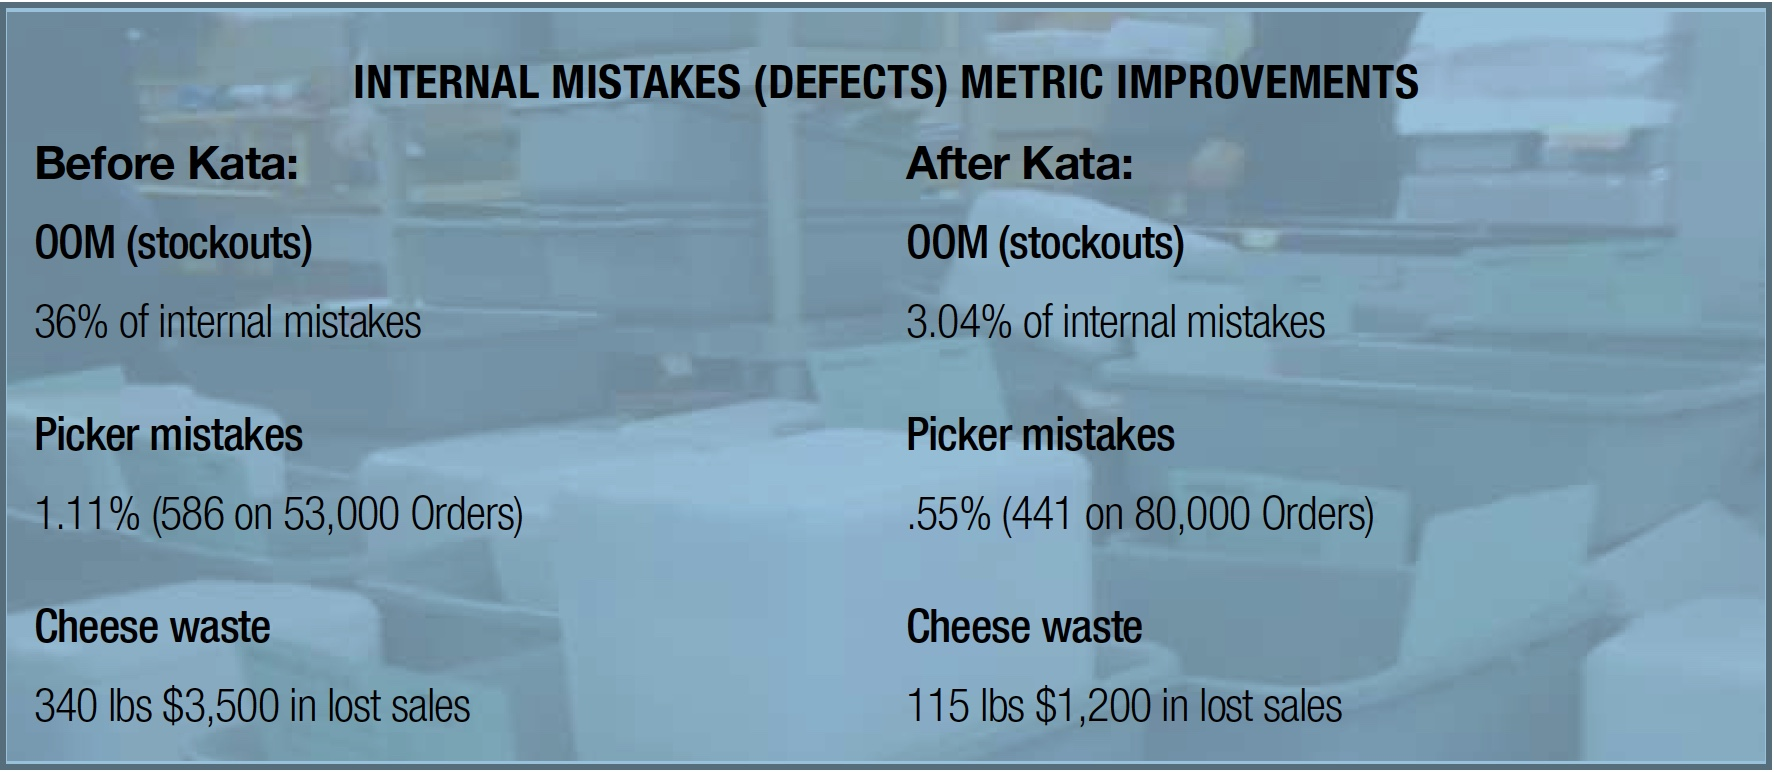 Internal Mistakes Metric Improvements - Zingerman's